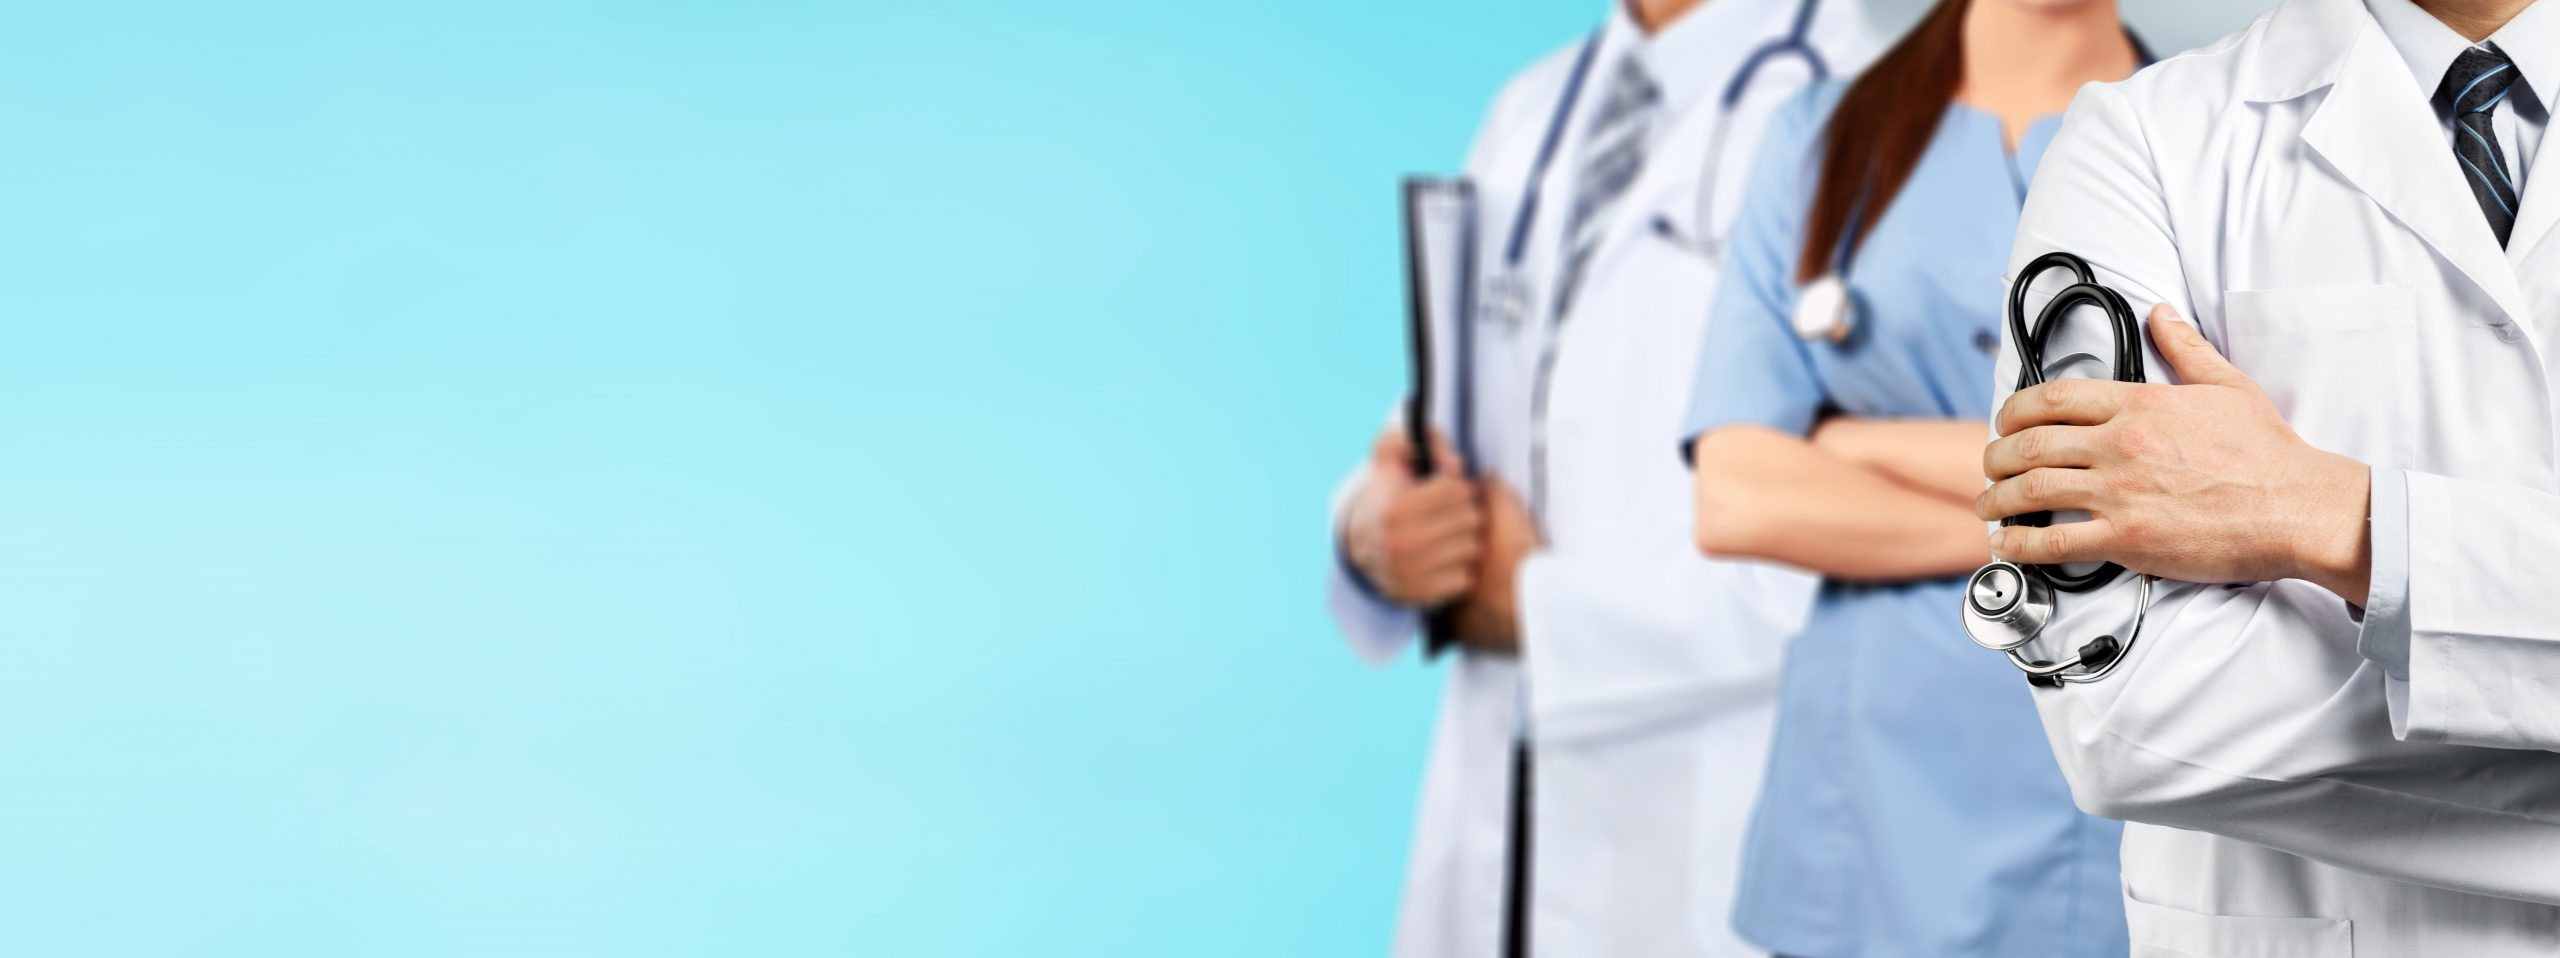 10 Signs Your Healthcare Provider is Not HIPAA Compliant